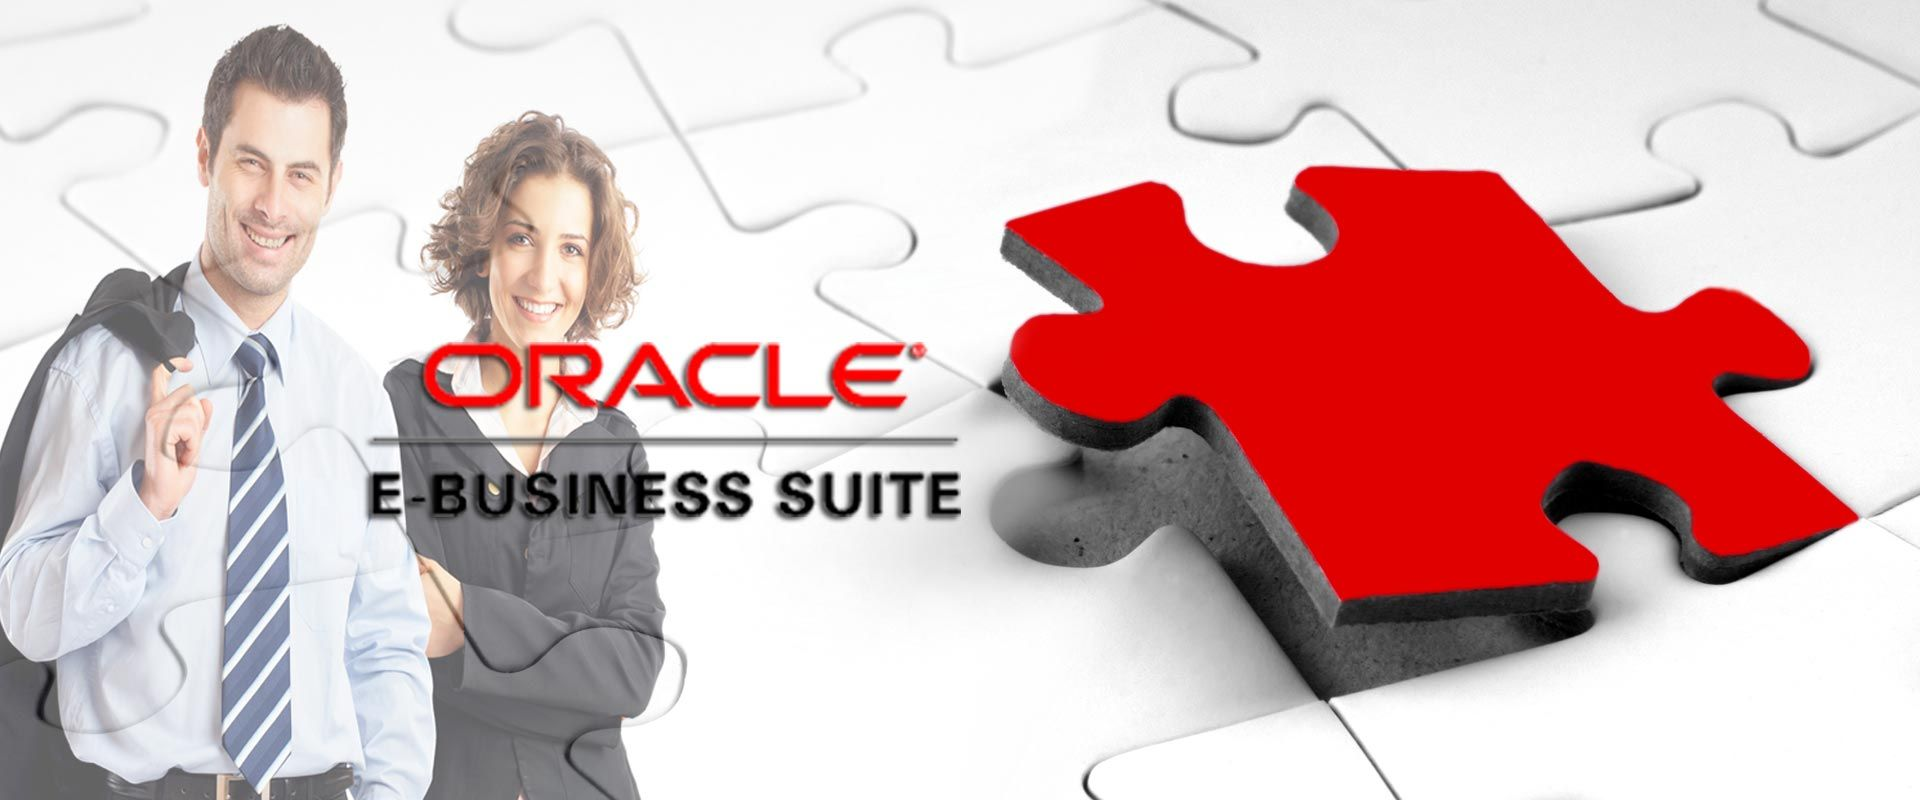 Oracle E-Business Suite Consulting Company in Houston | Austin | Dallas | San Antonio